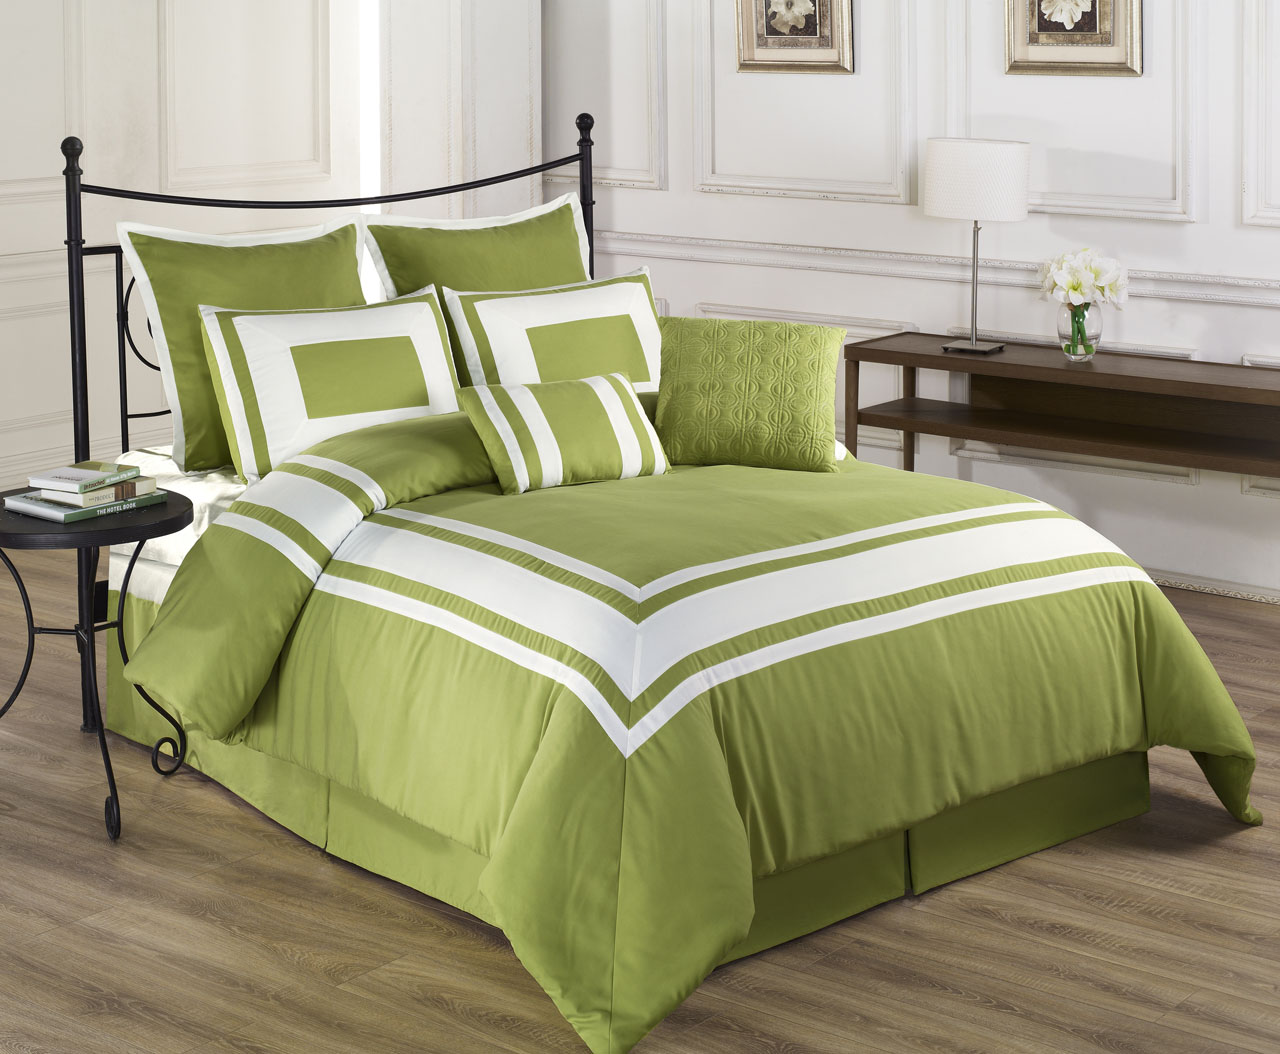 satin sets spread covers set sheets comforter linen a luxury bedspreads in duvet product online aqua bed queen bag size jacquard king green girls bedding